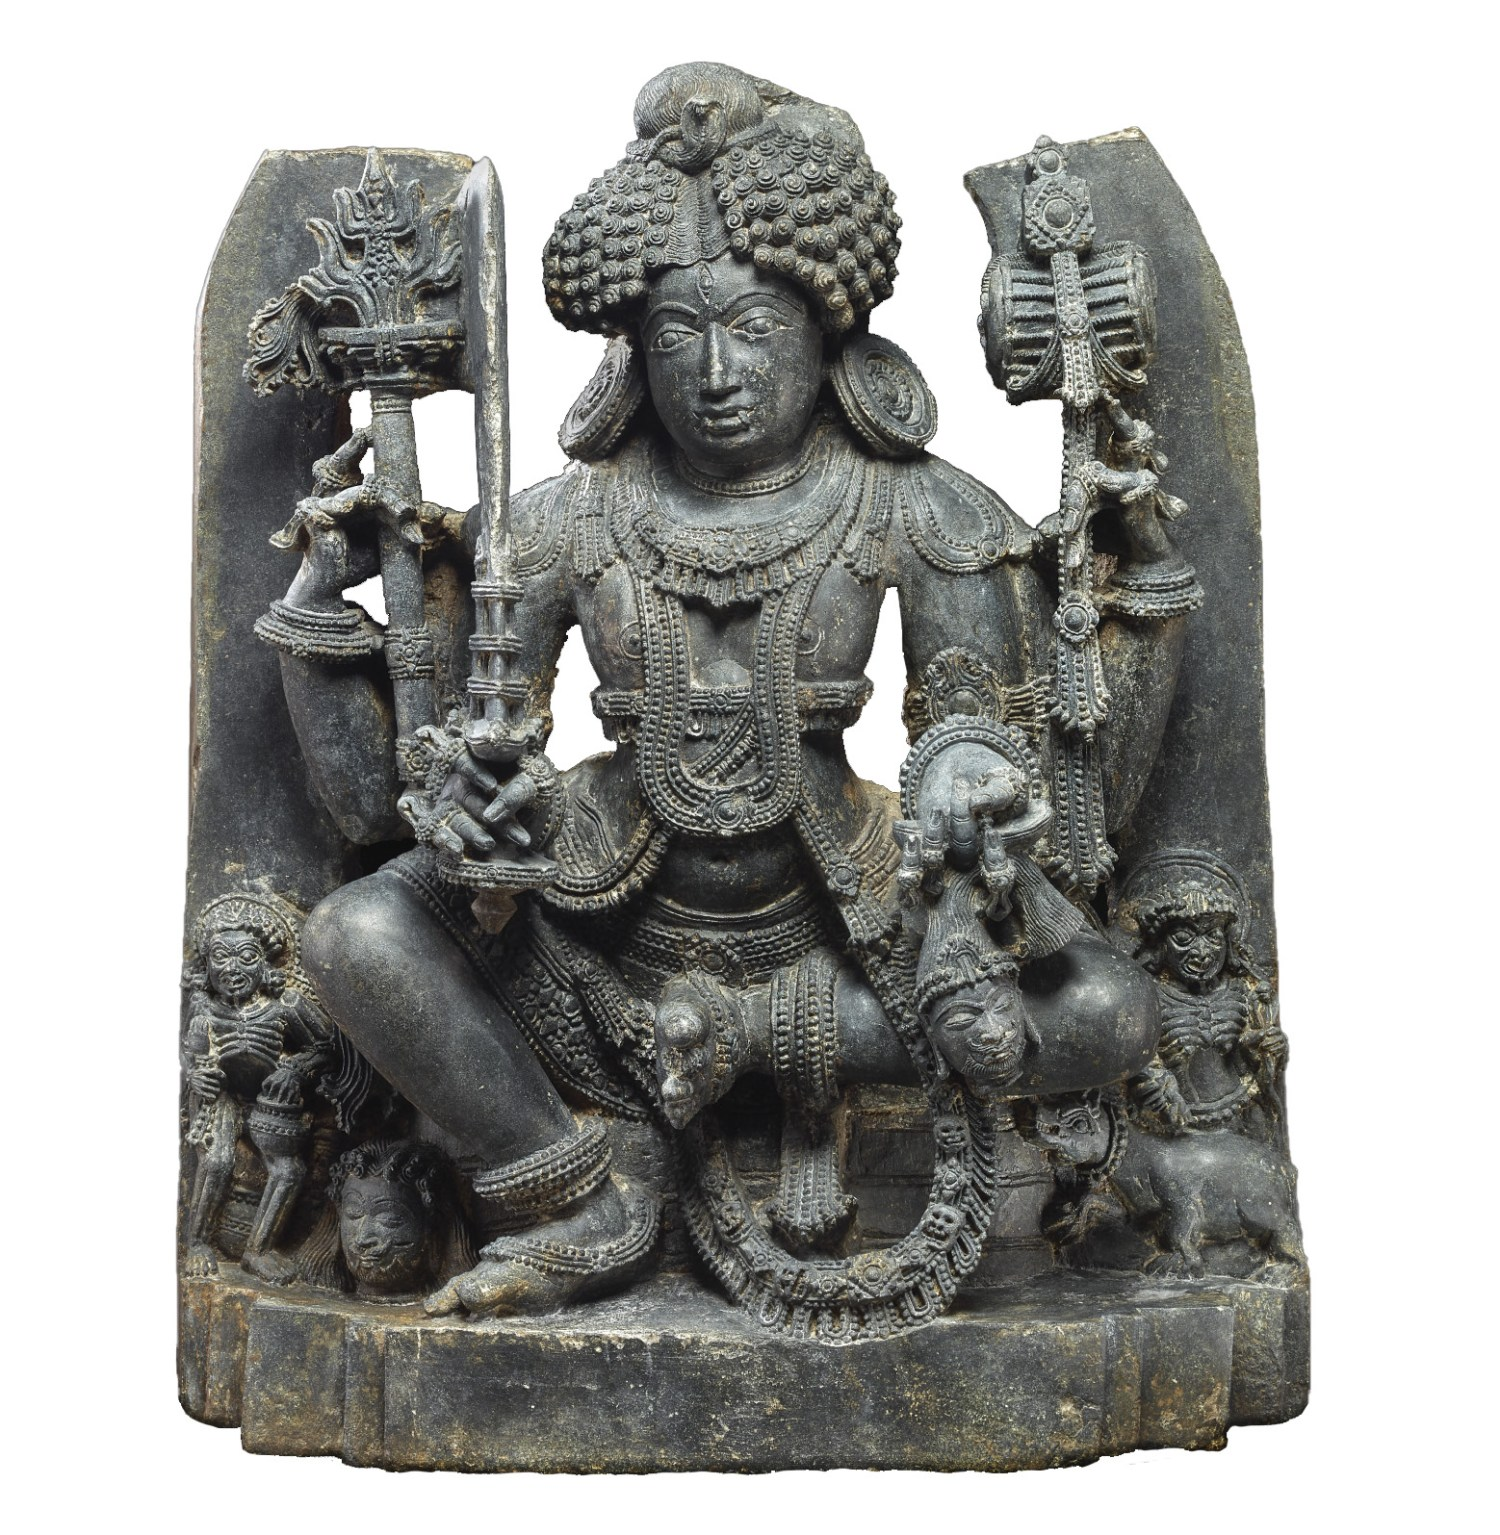 ABOVE An early example from Nepal of a 'Tantra' that is, a religious text. BELOW A 13th-century temple sculpture showing Bhairava. His impassive expression is undercut by the pair of fangs projecting from his mouth and the severed head clutched in his hand. Members of the demonic dead stand to Bhairava's left and right.